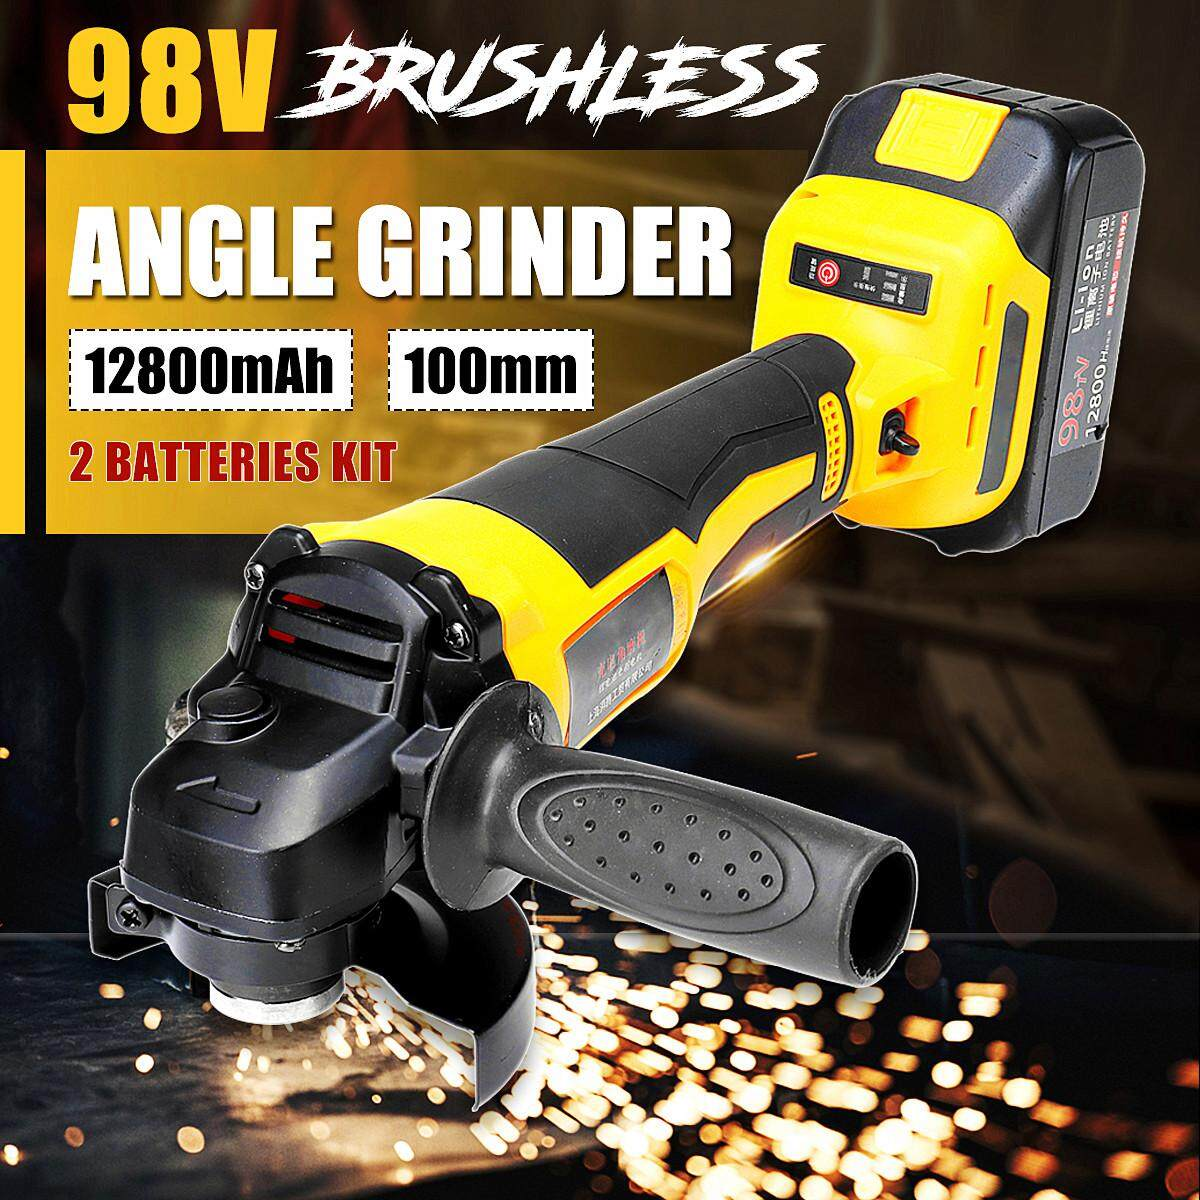 Wireless Brushless Angle Grinder + 98V 12800mAh Li-Ion Battery + Accessories